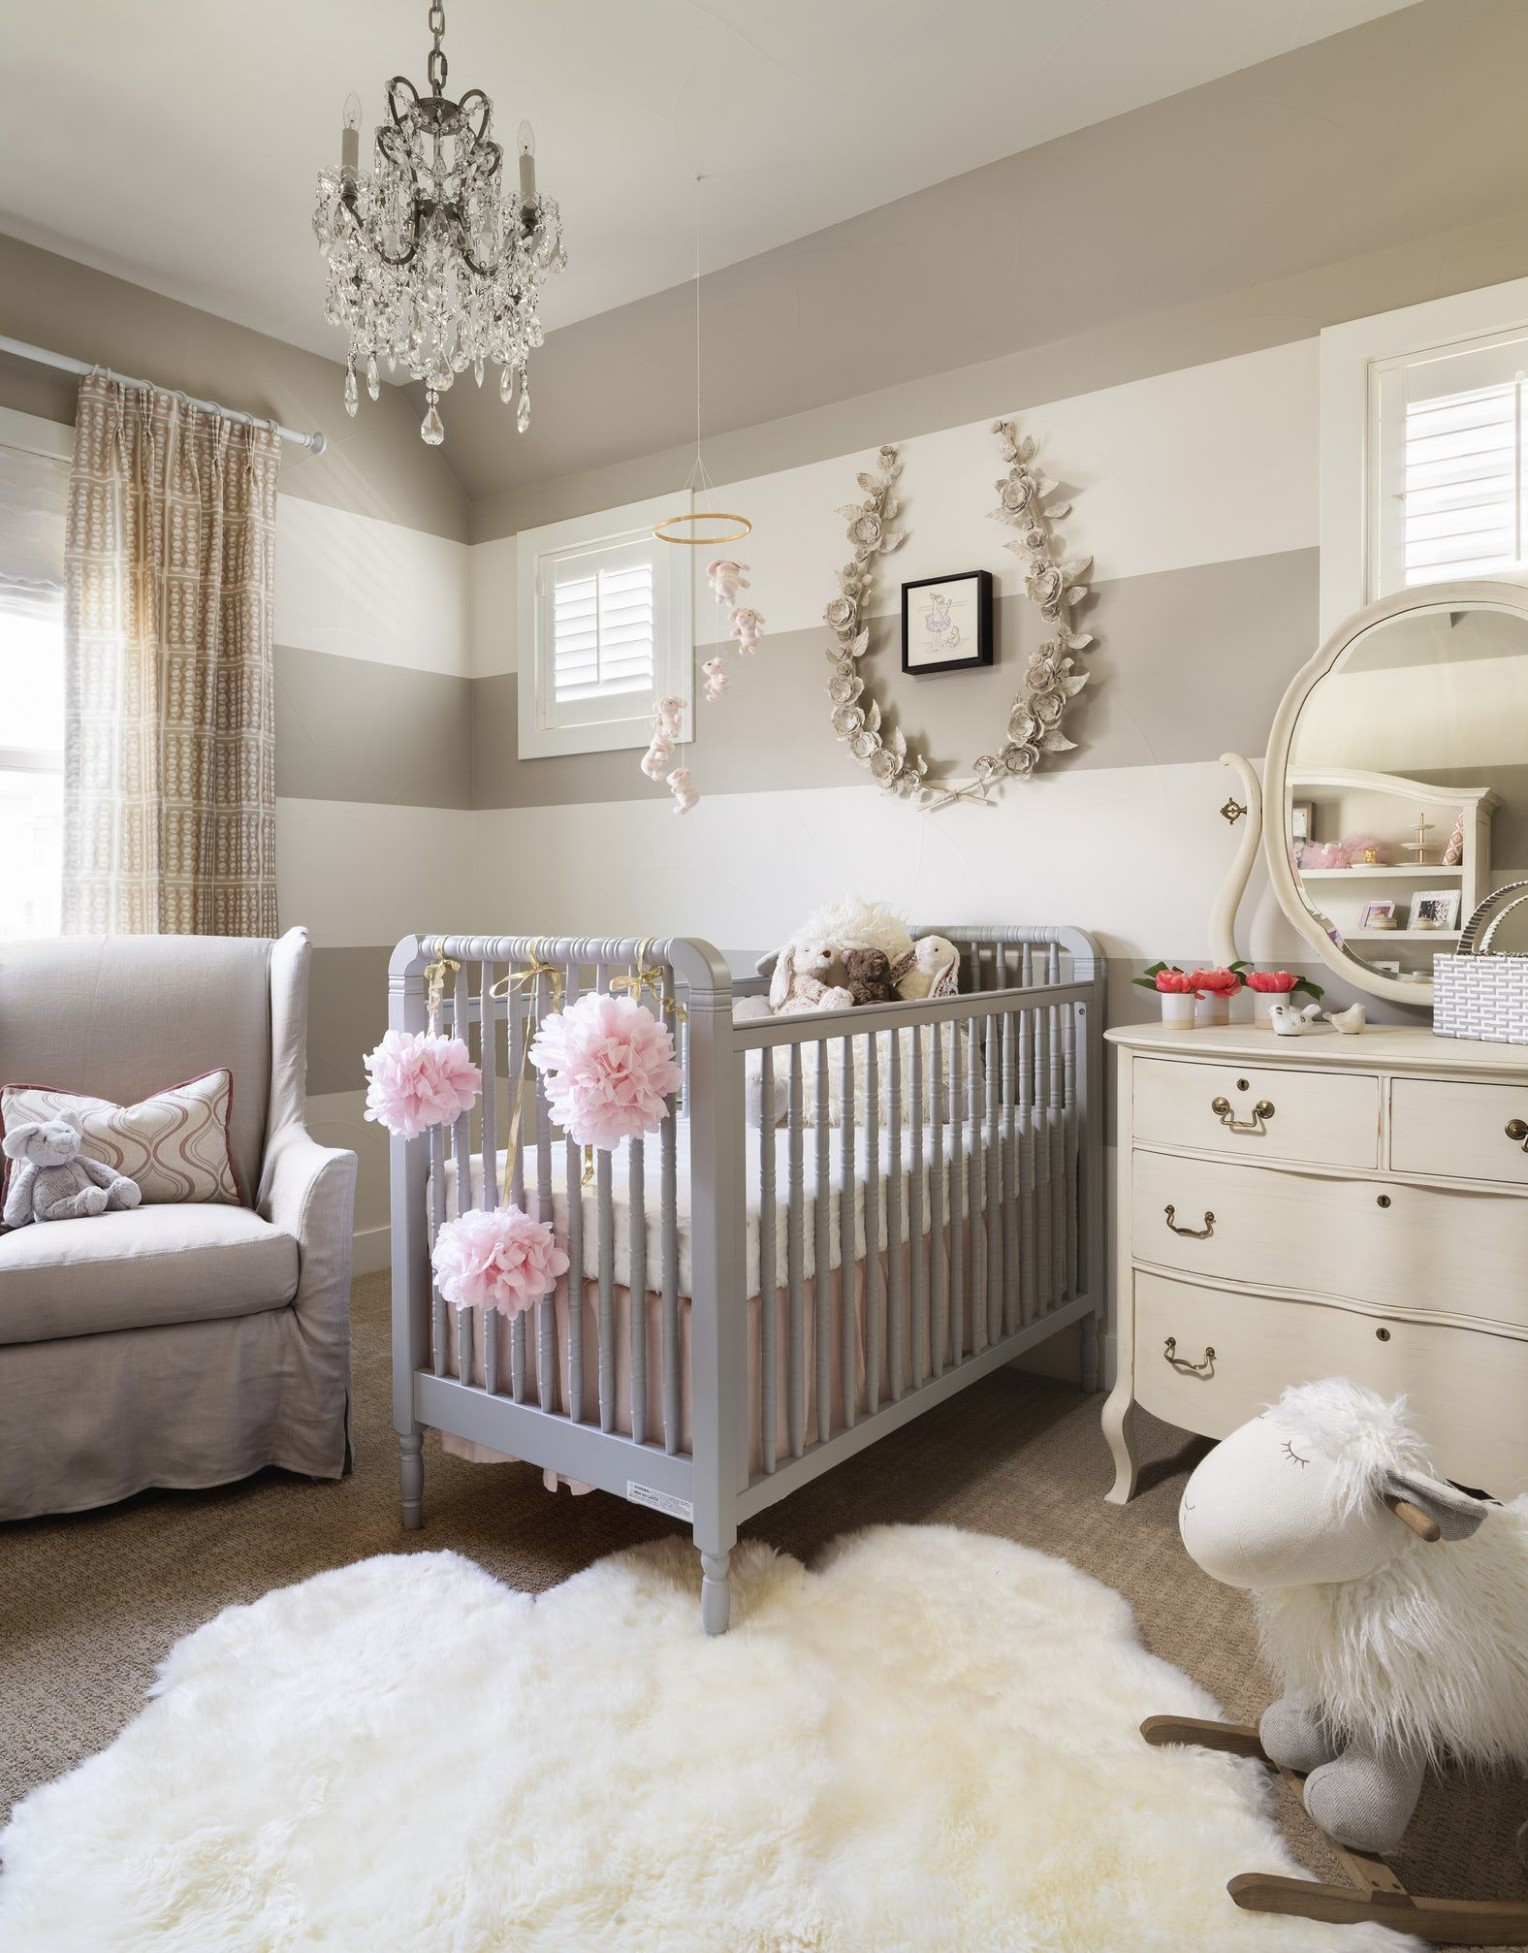 Chic Baby Room Design Ideas - How to Decorate a Nursery - Baby Room Photos